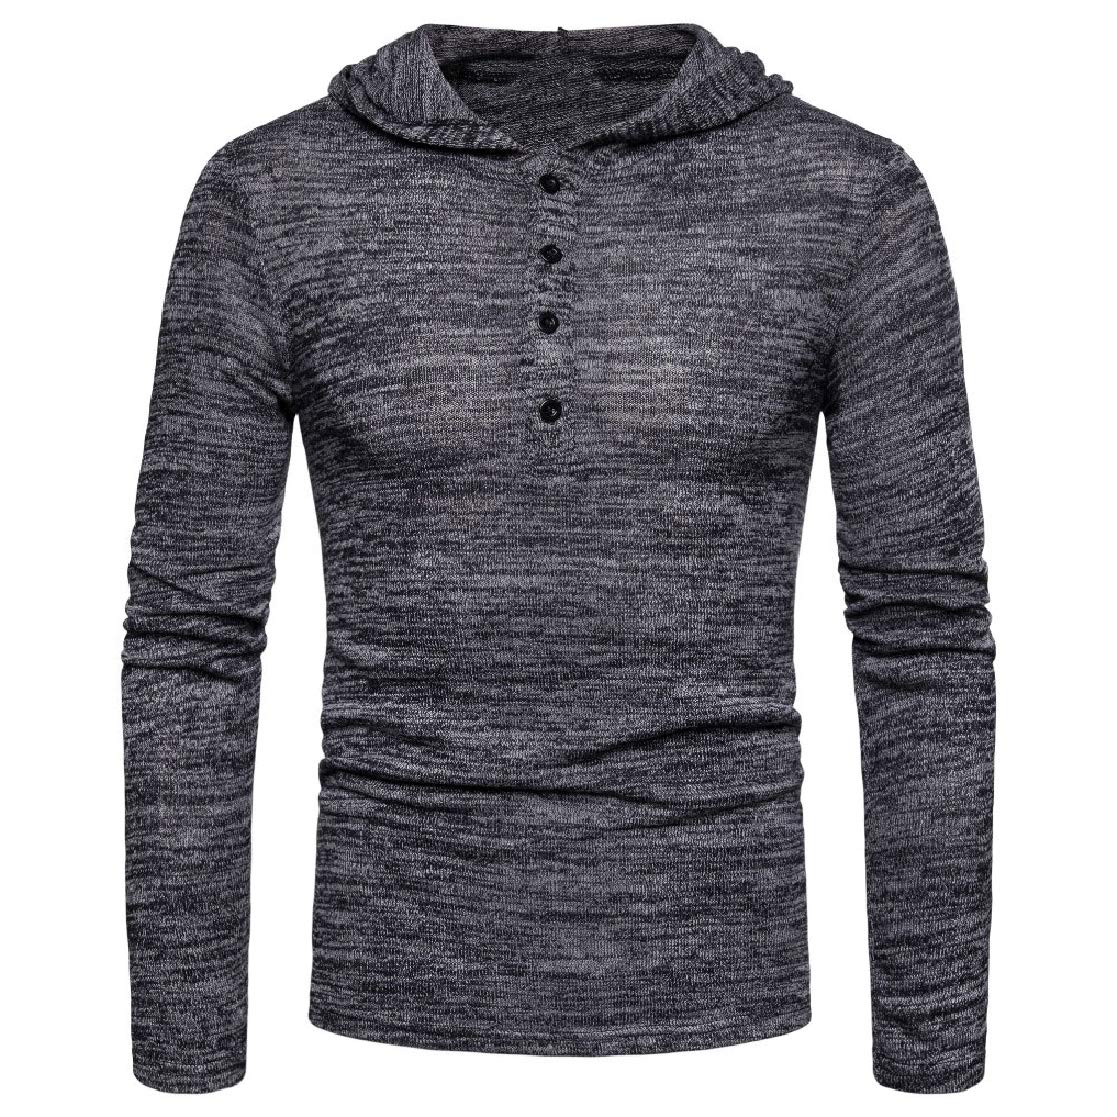 YUNY Mens Hooded Pure Long-Sleeve T-Shirts Pullover Casual Sweatshirts AS1 M